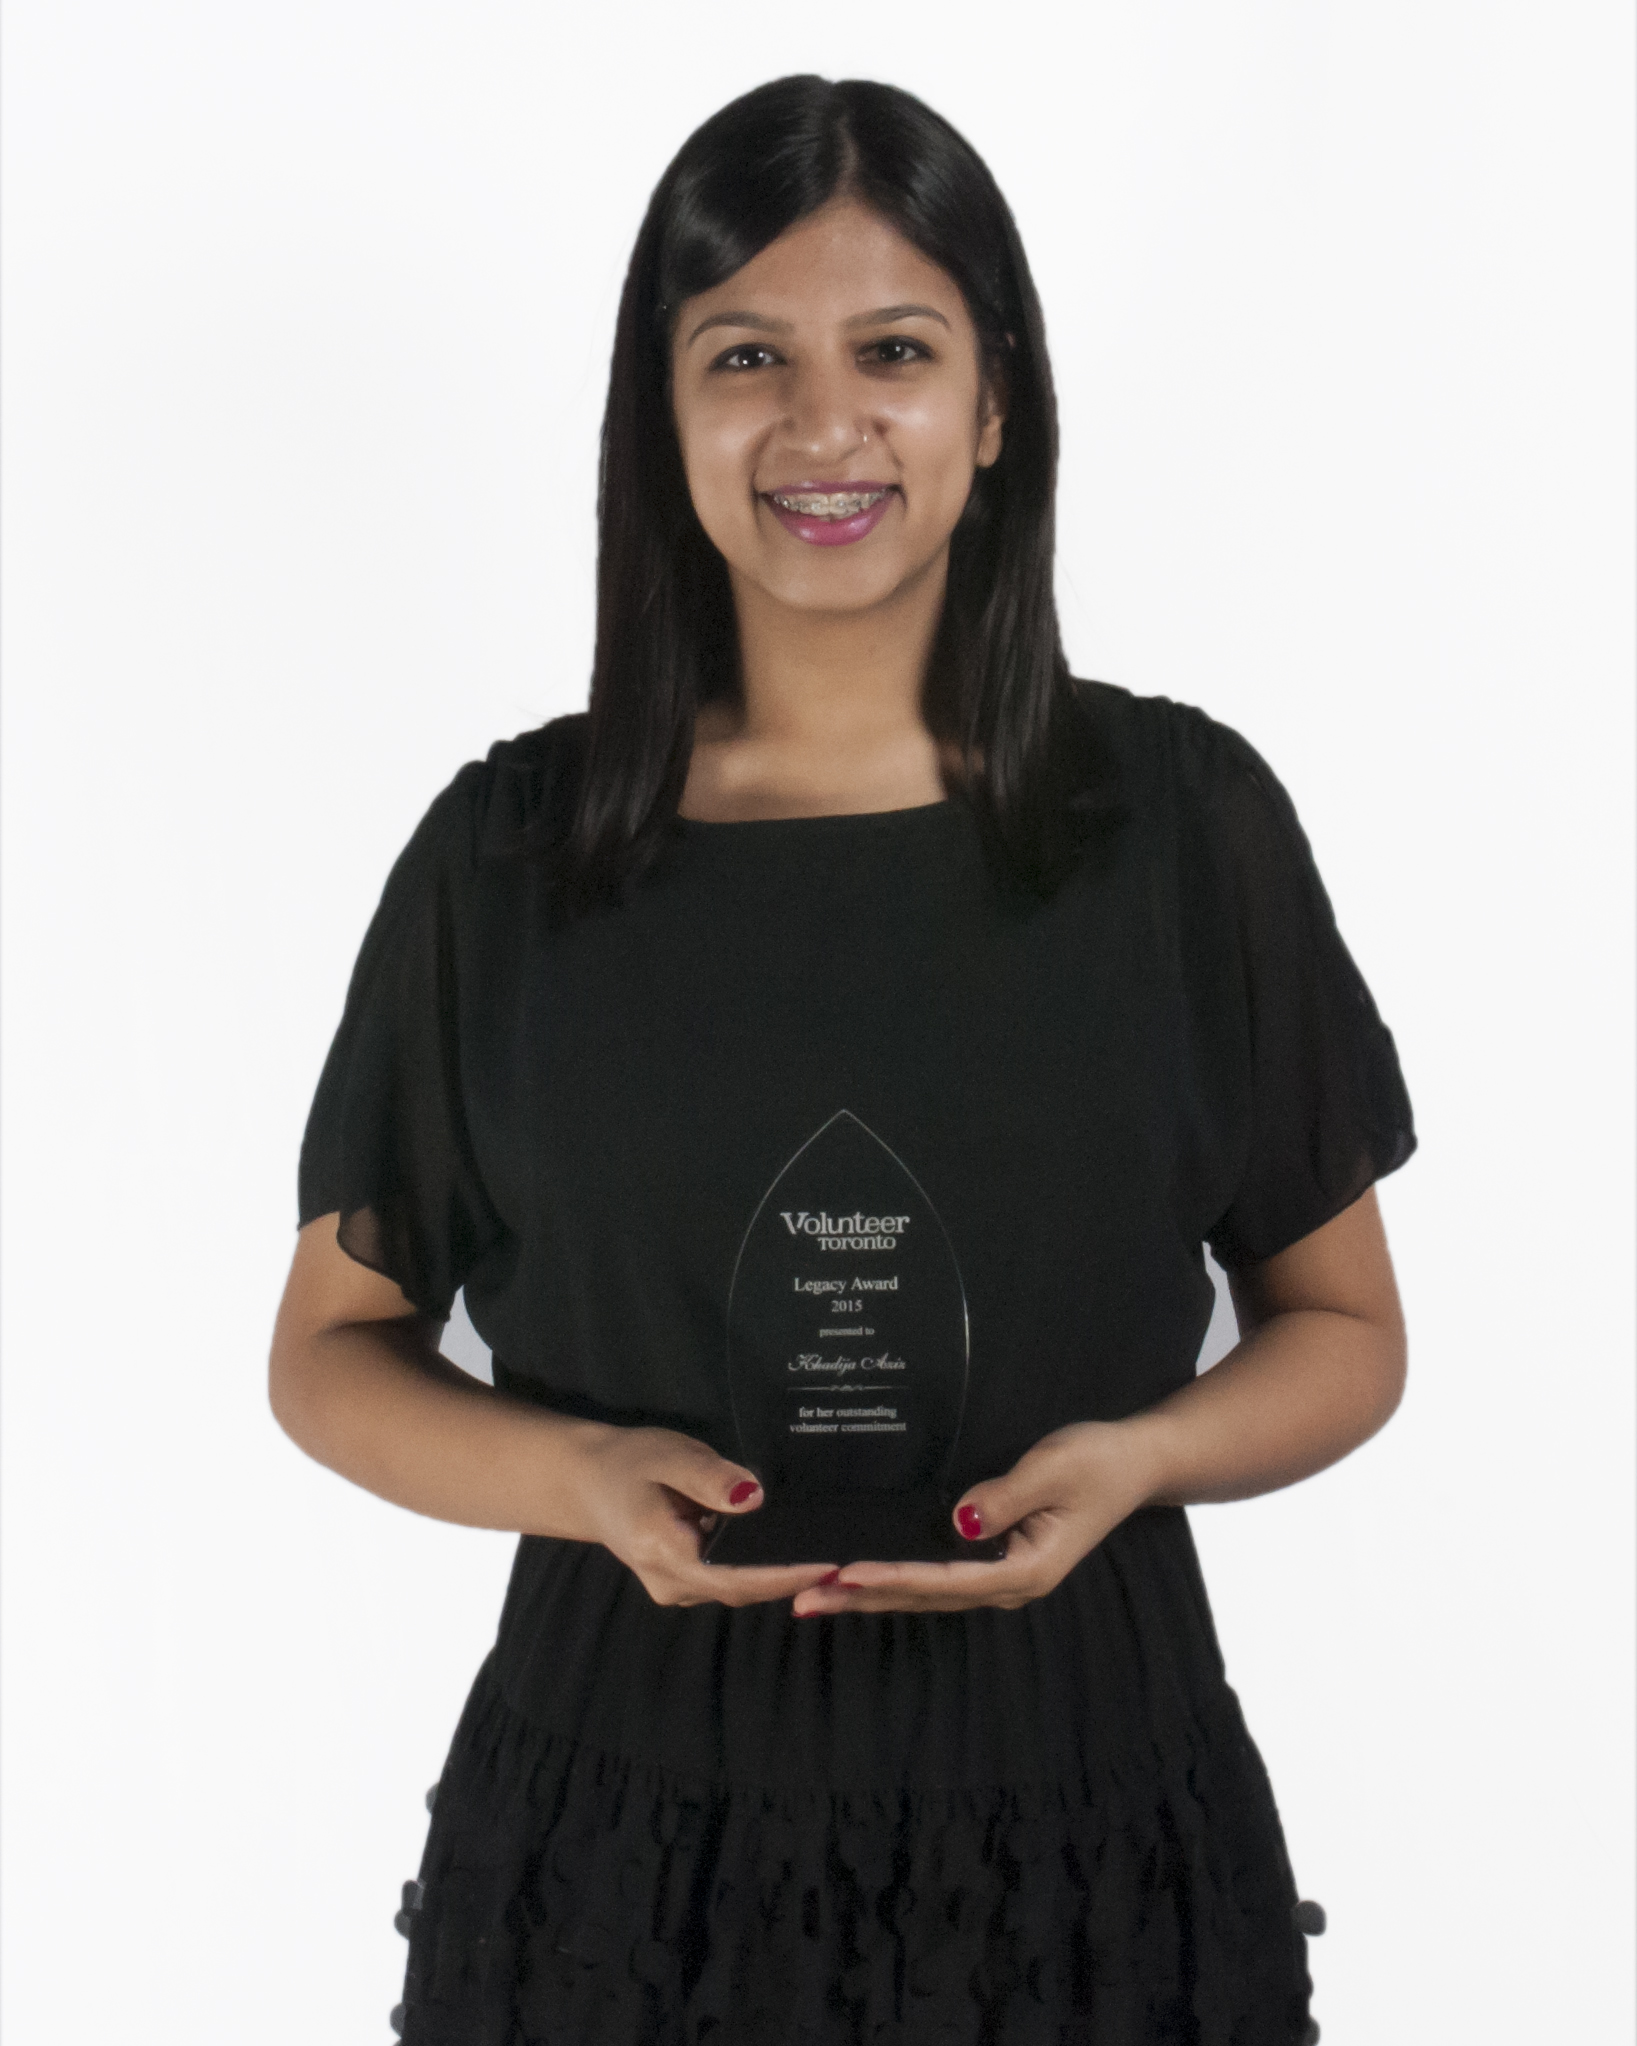 Photo of Khadija Aziz with Award